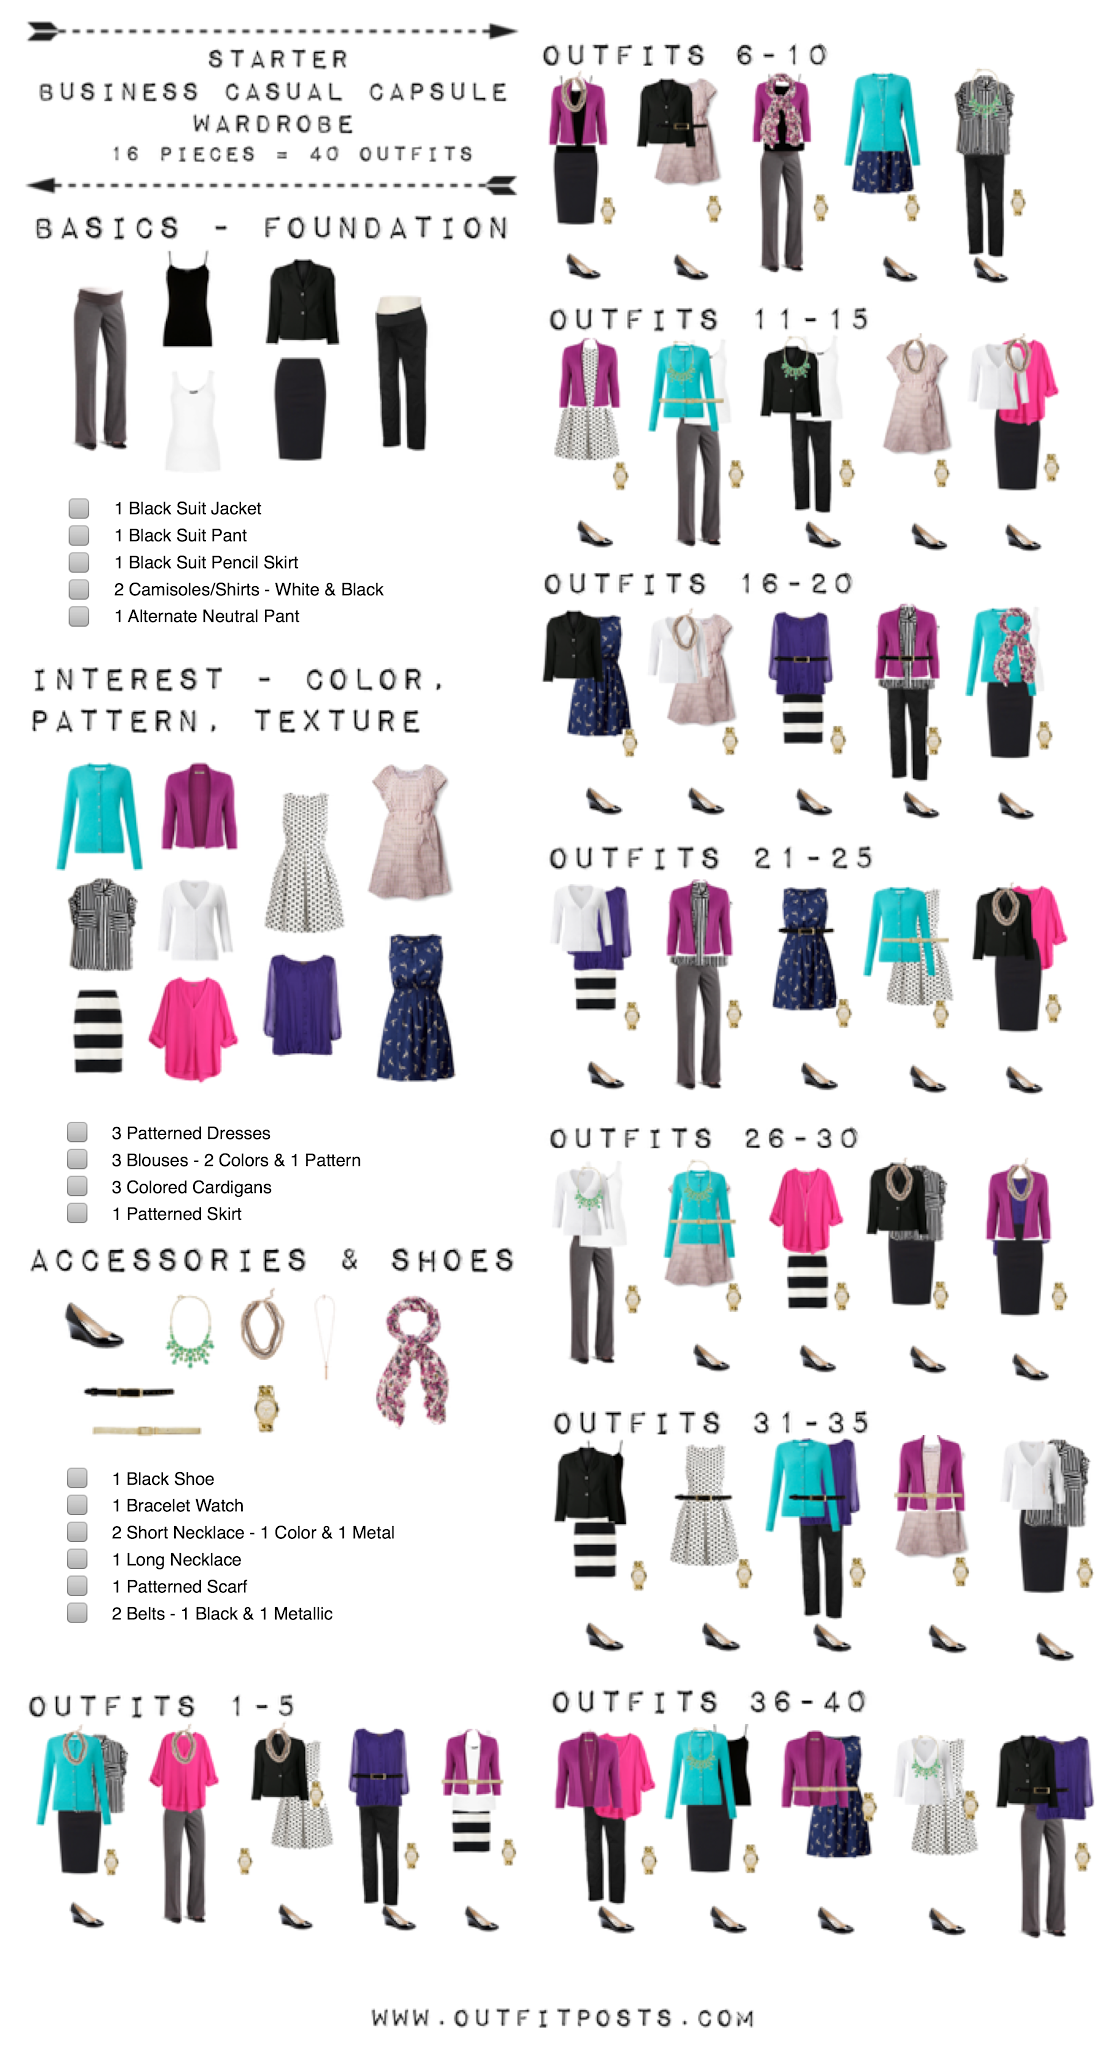 starter business casual capsule wardrobe checklist outfit posts